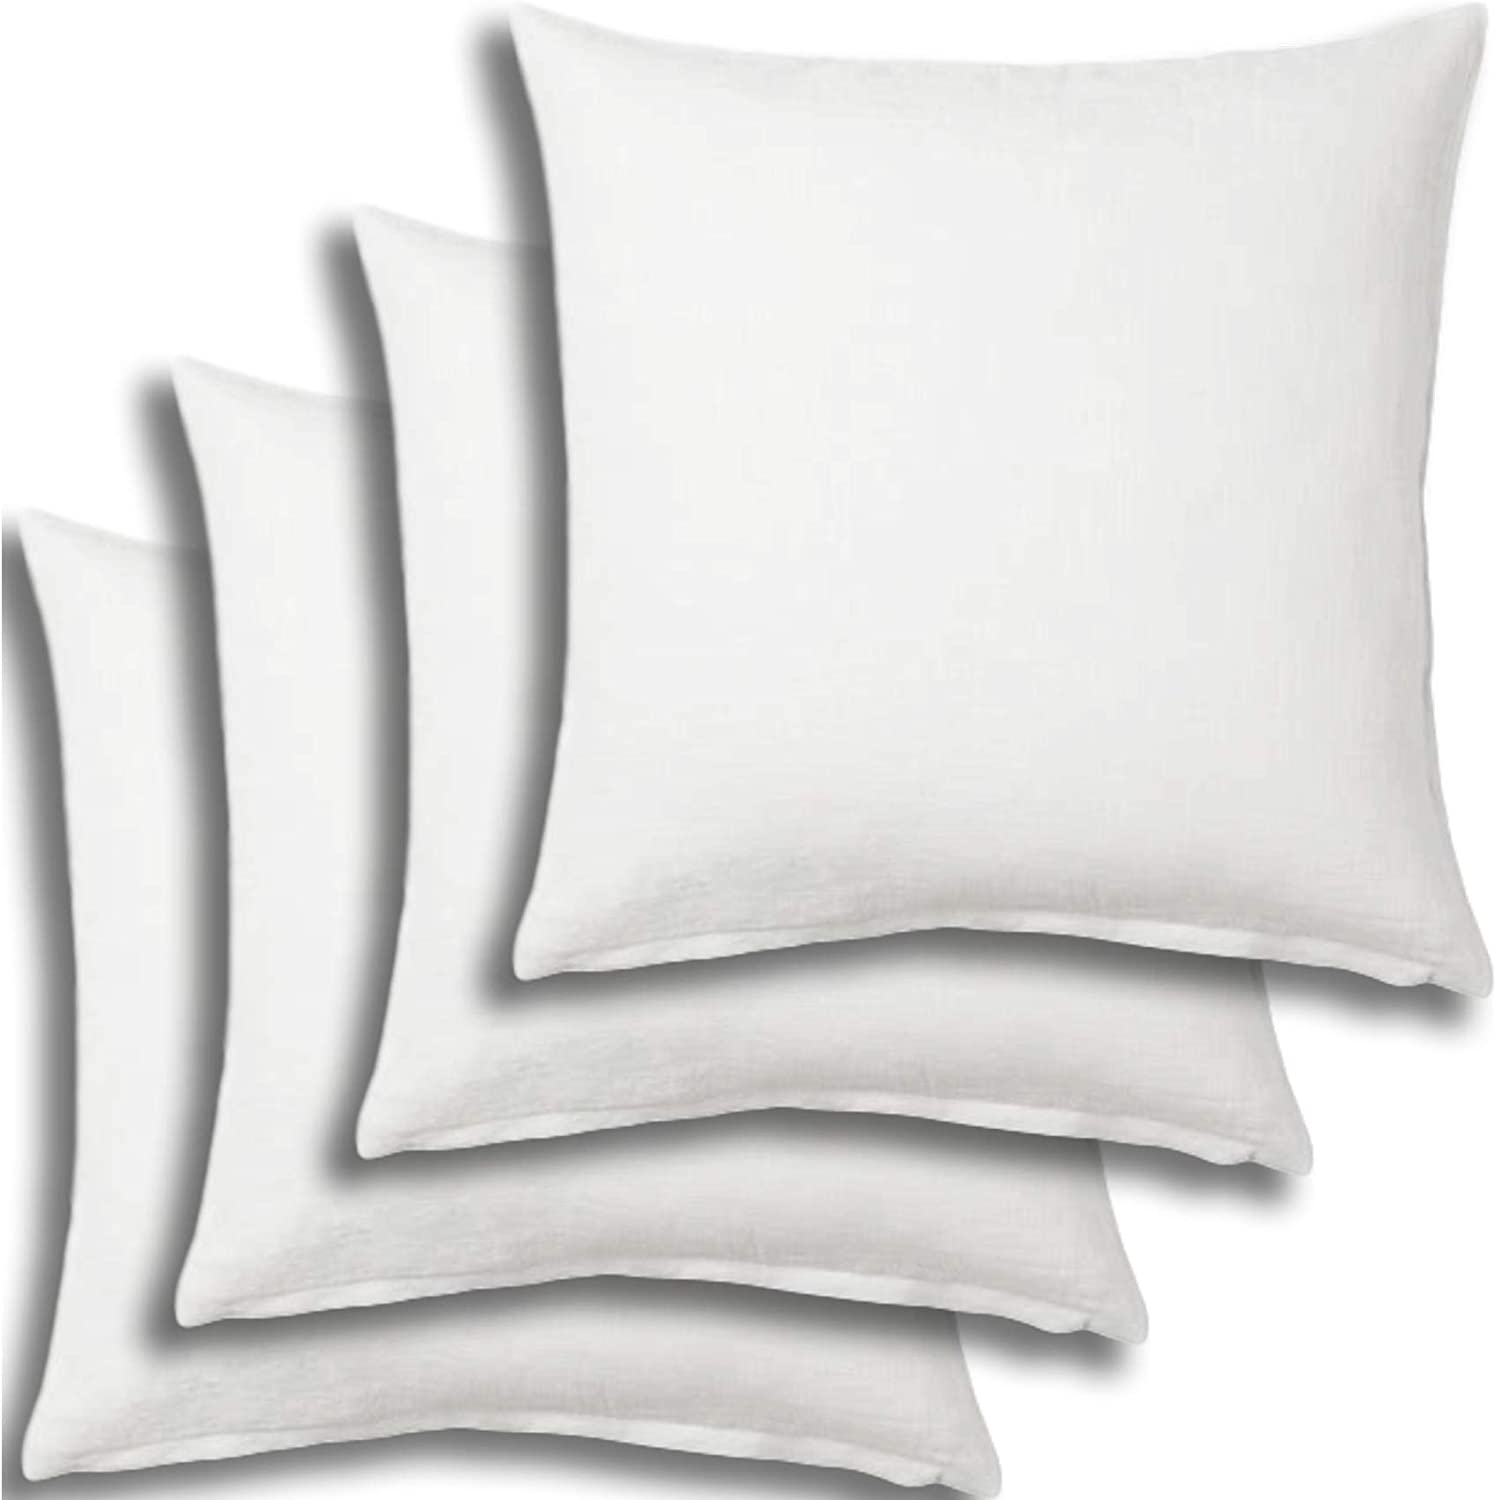 Set of 4 - Pillow Insert 28x28 Decorative Throw Pillow Inserts - Euro Sham Stuffer for Sofa Bed Couch Square White Form 4 Pack - Hypoallergenic Machine Washable and Dry Polyester - Made in USA